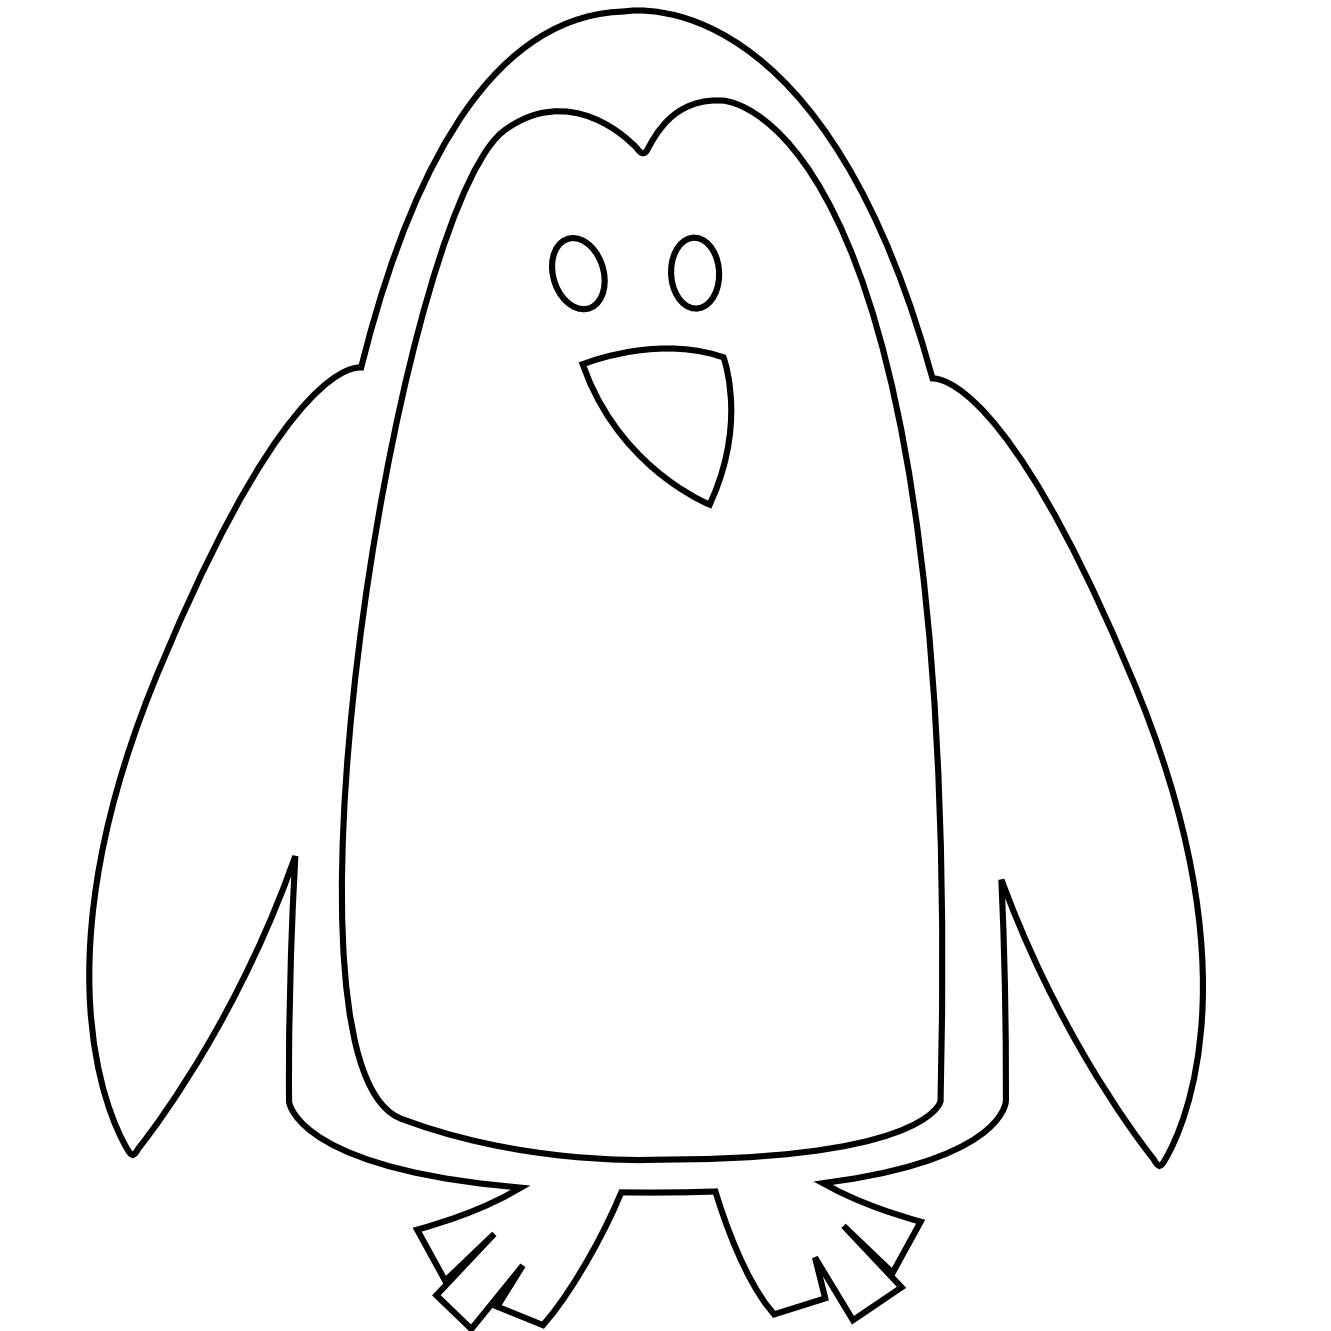 Yak clipart coloring book. Baby penguin black and